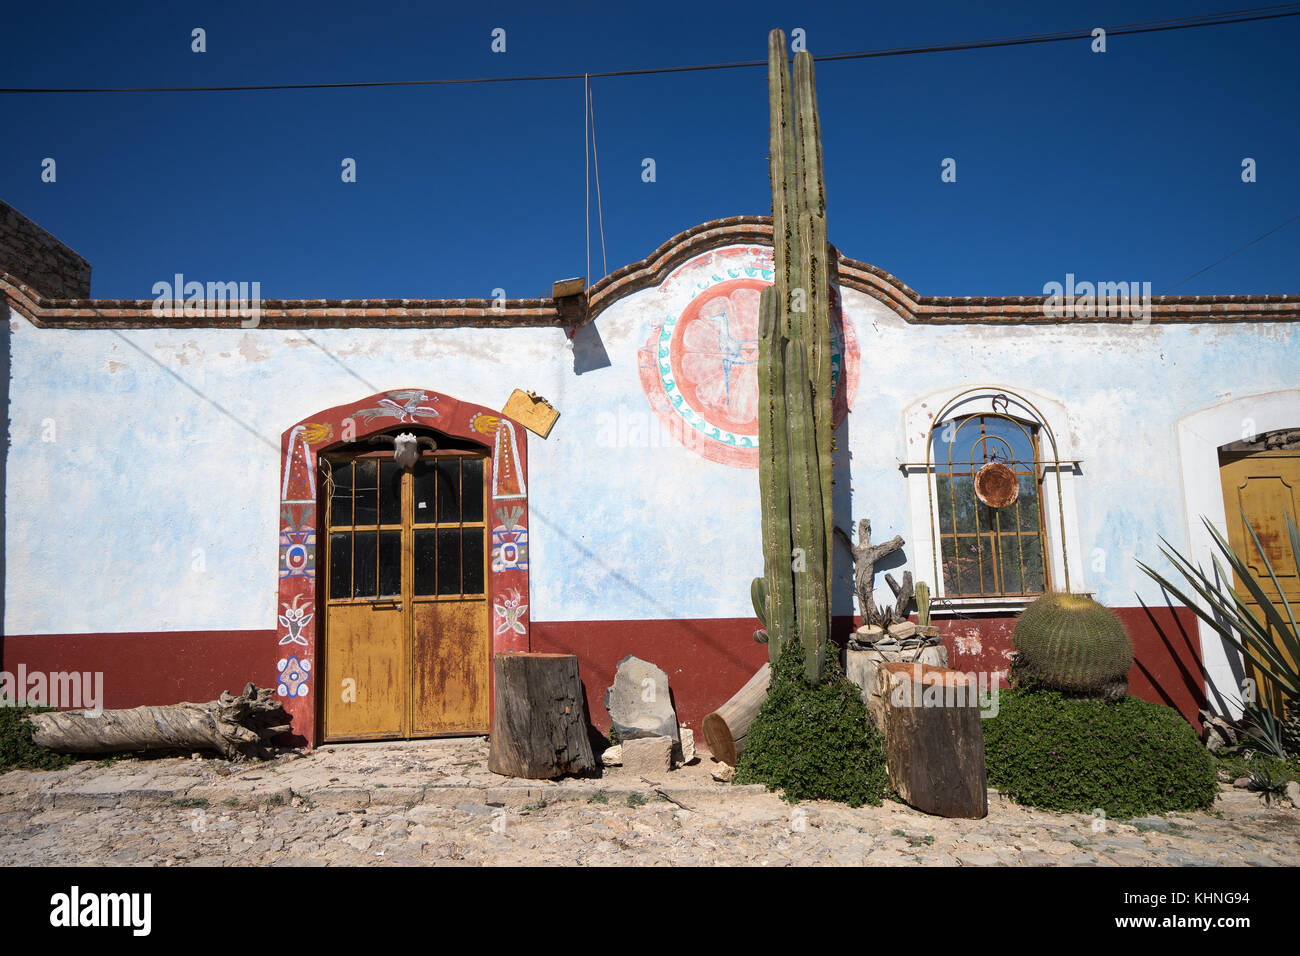 Mexican architecture in Mineral de Pozos - Stock Image